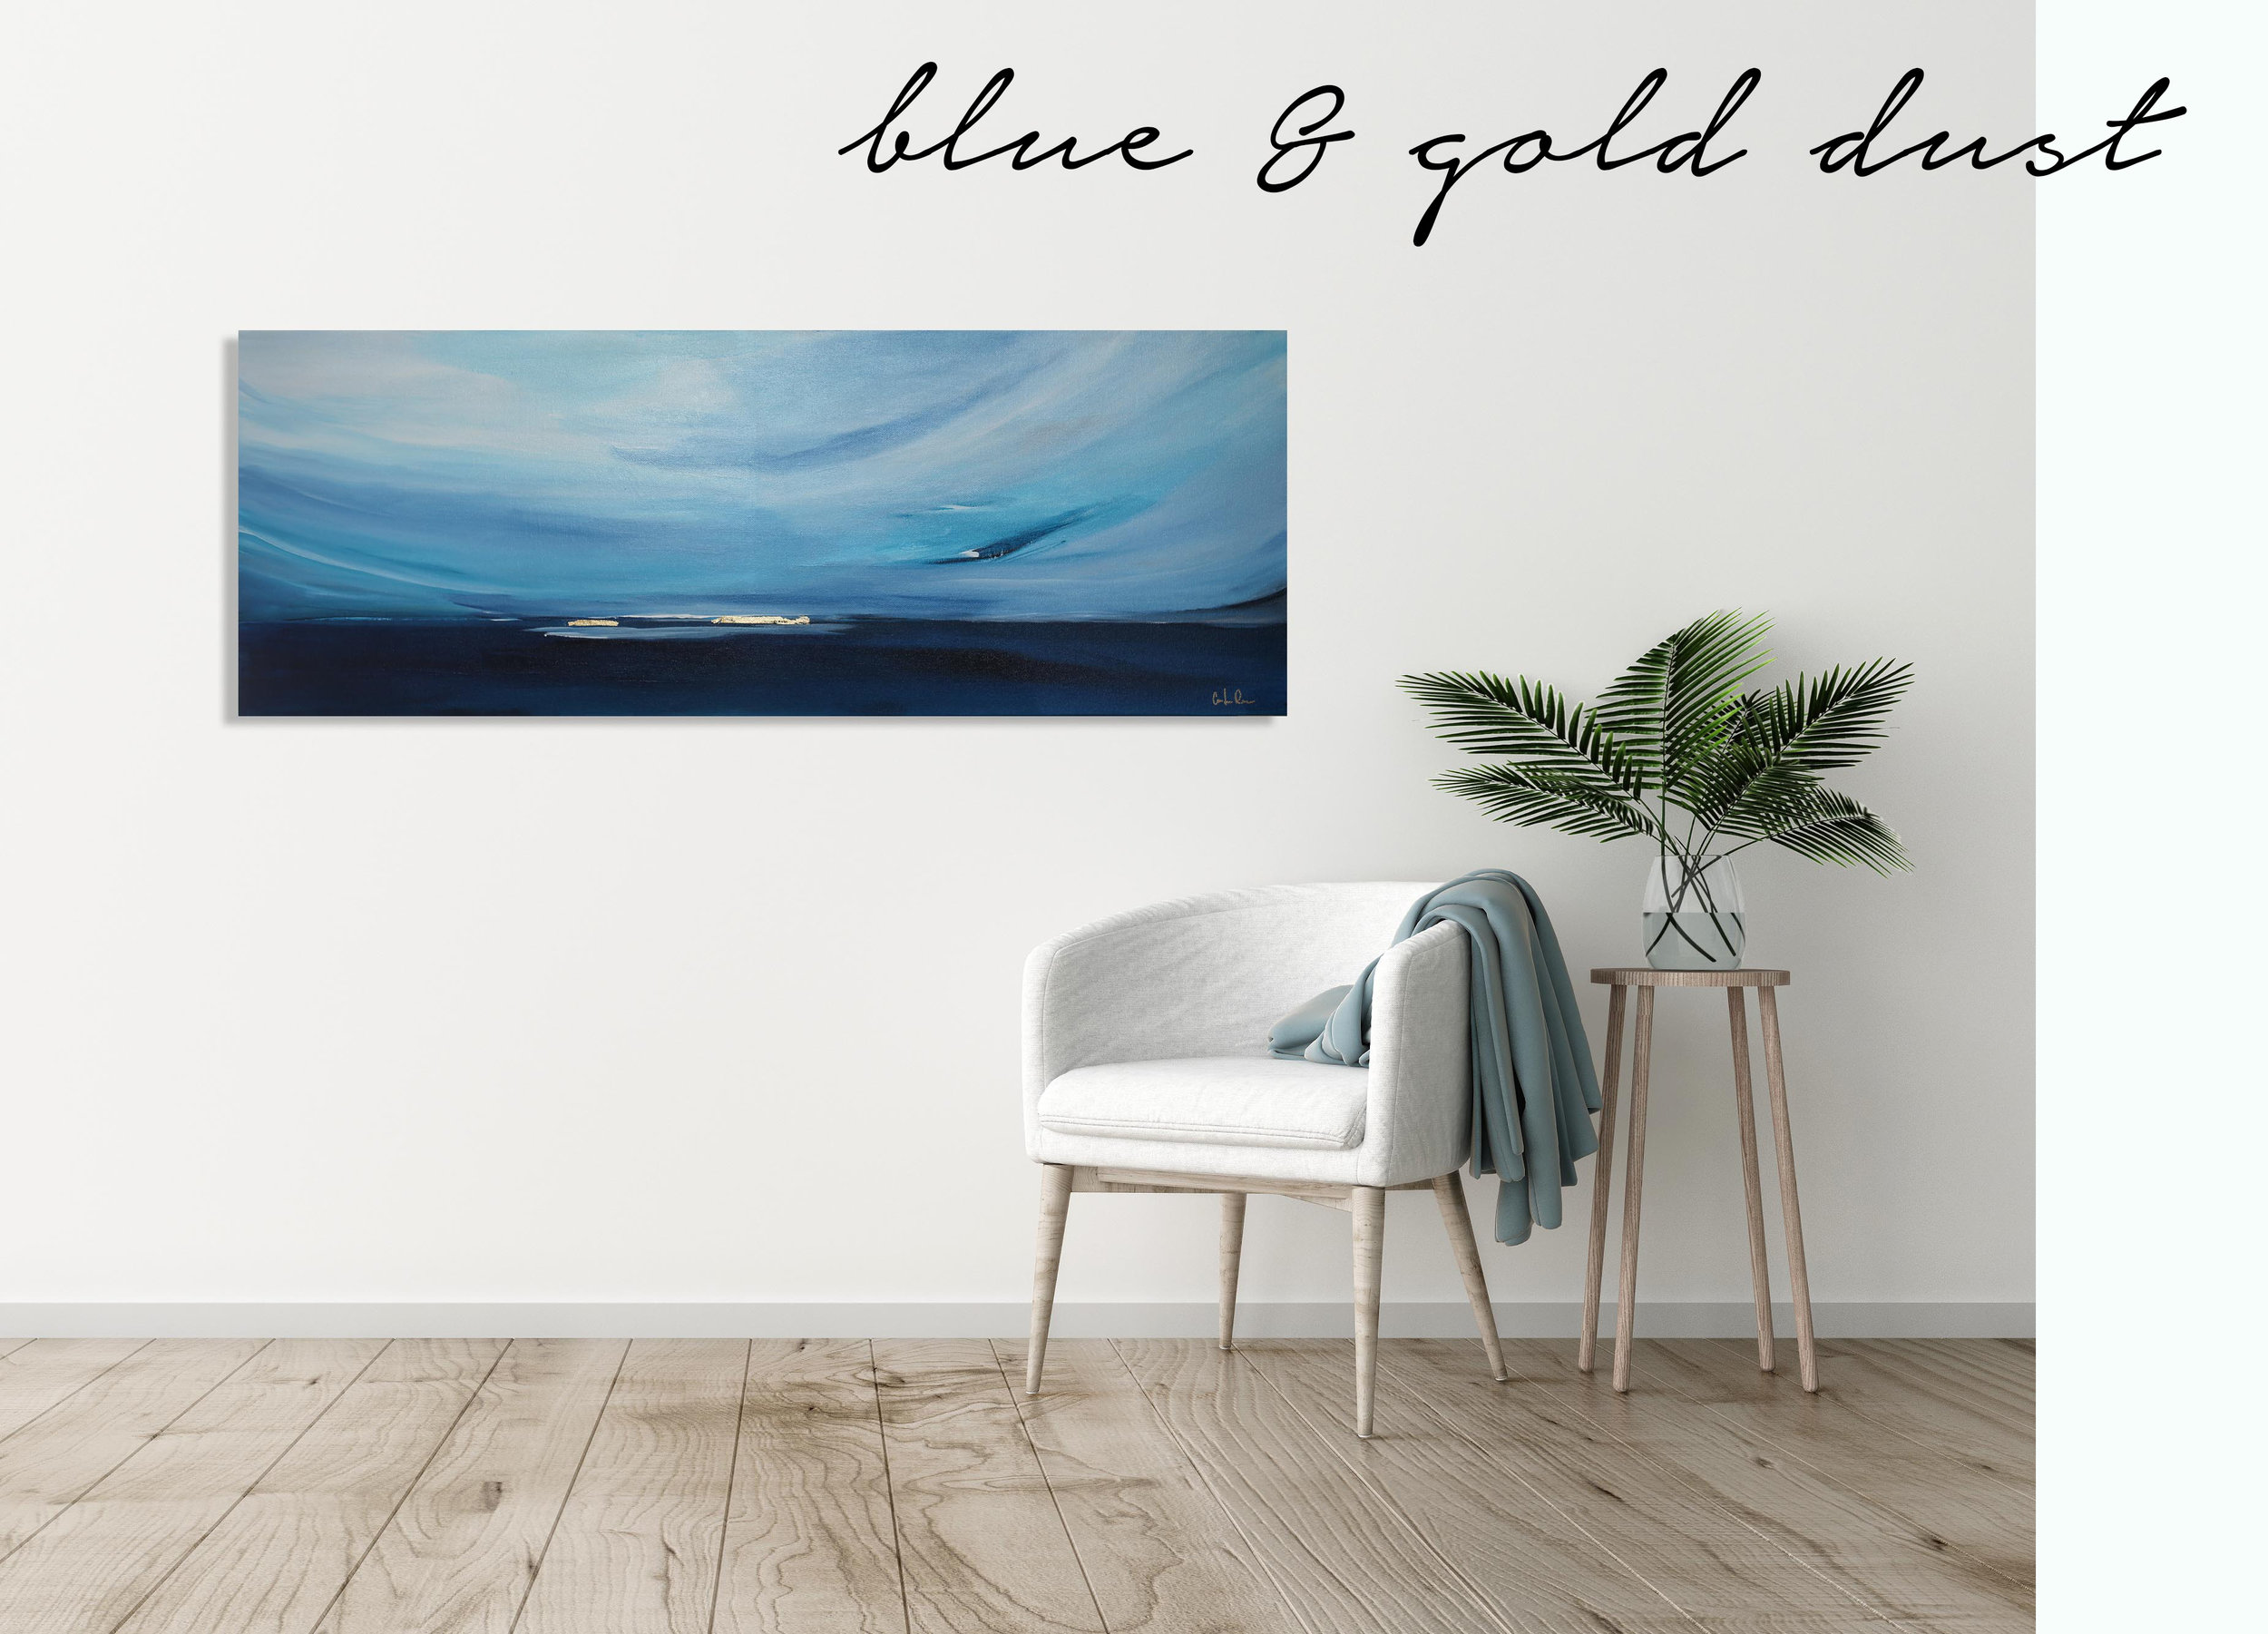 Blue and gold dust horizontal painting